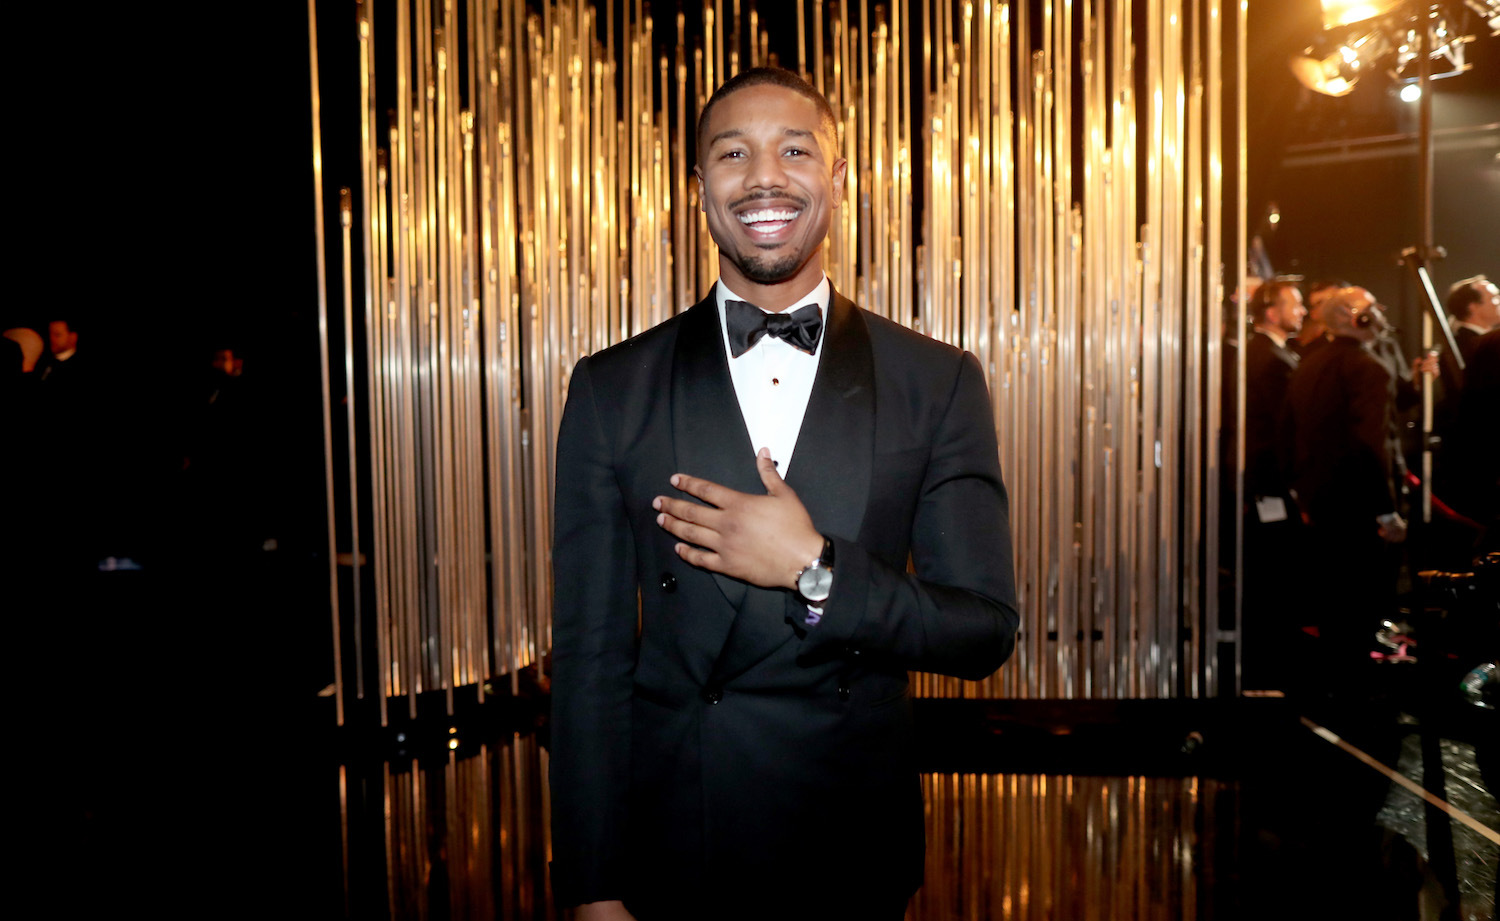 Michael B. Jordan's Upcoming Movies: What's Next After Without Remorse